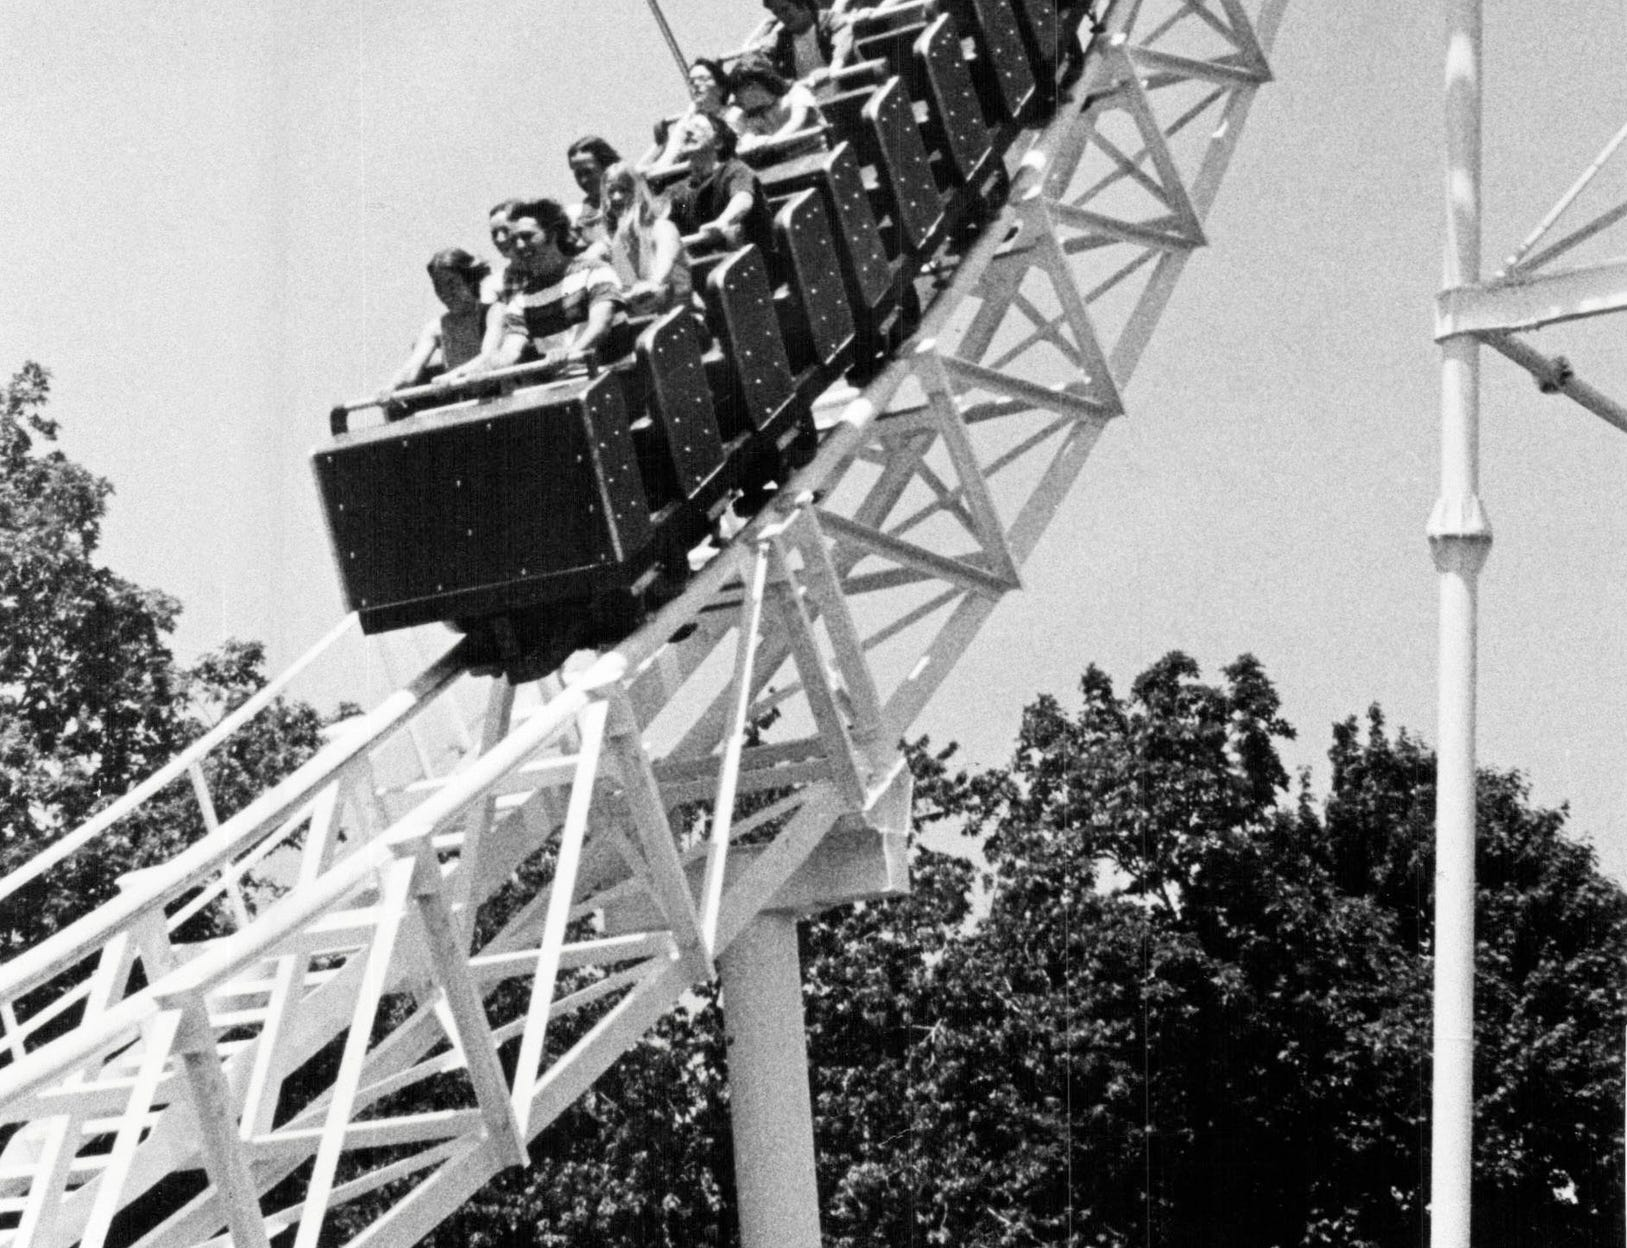 One of the roller coasters on Boblo Island.